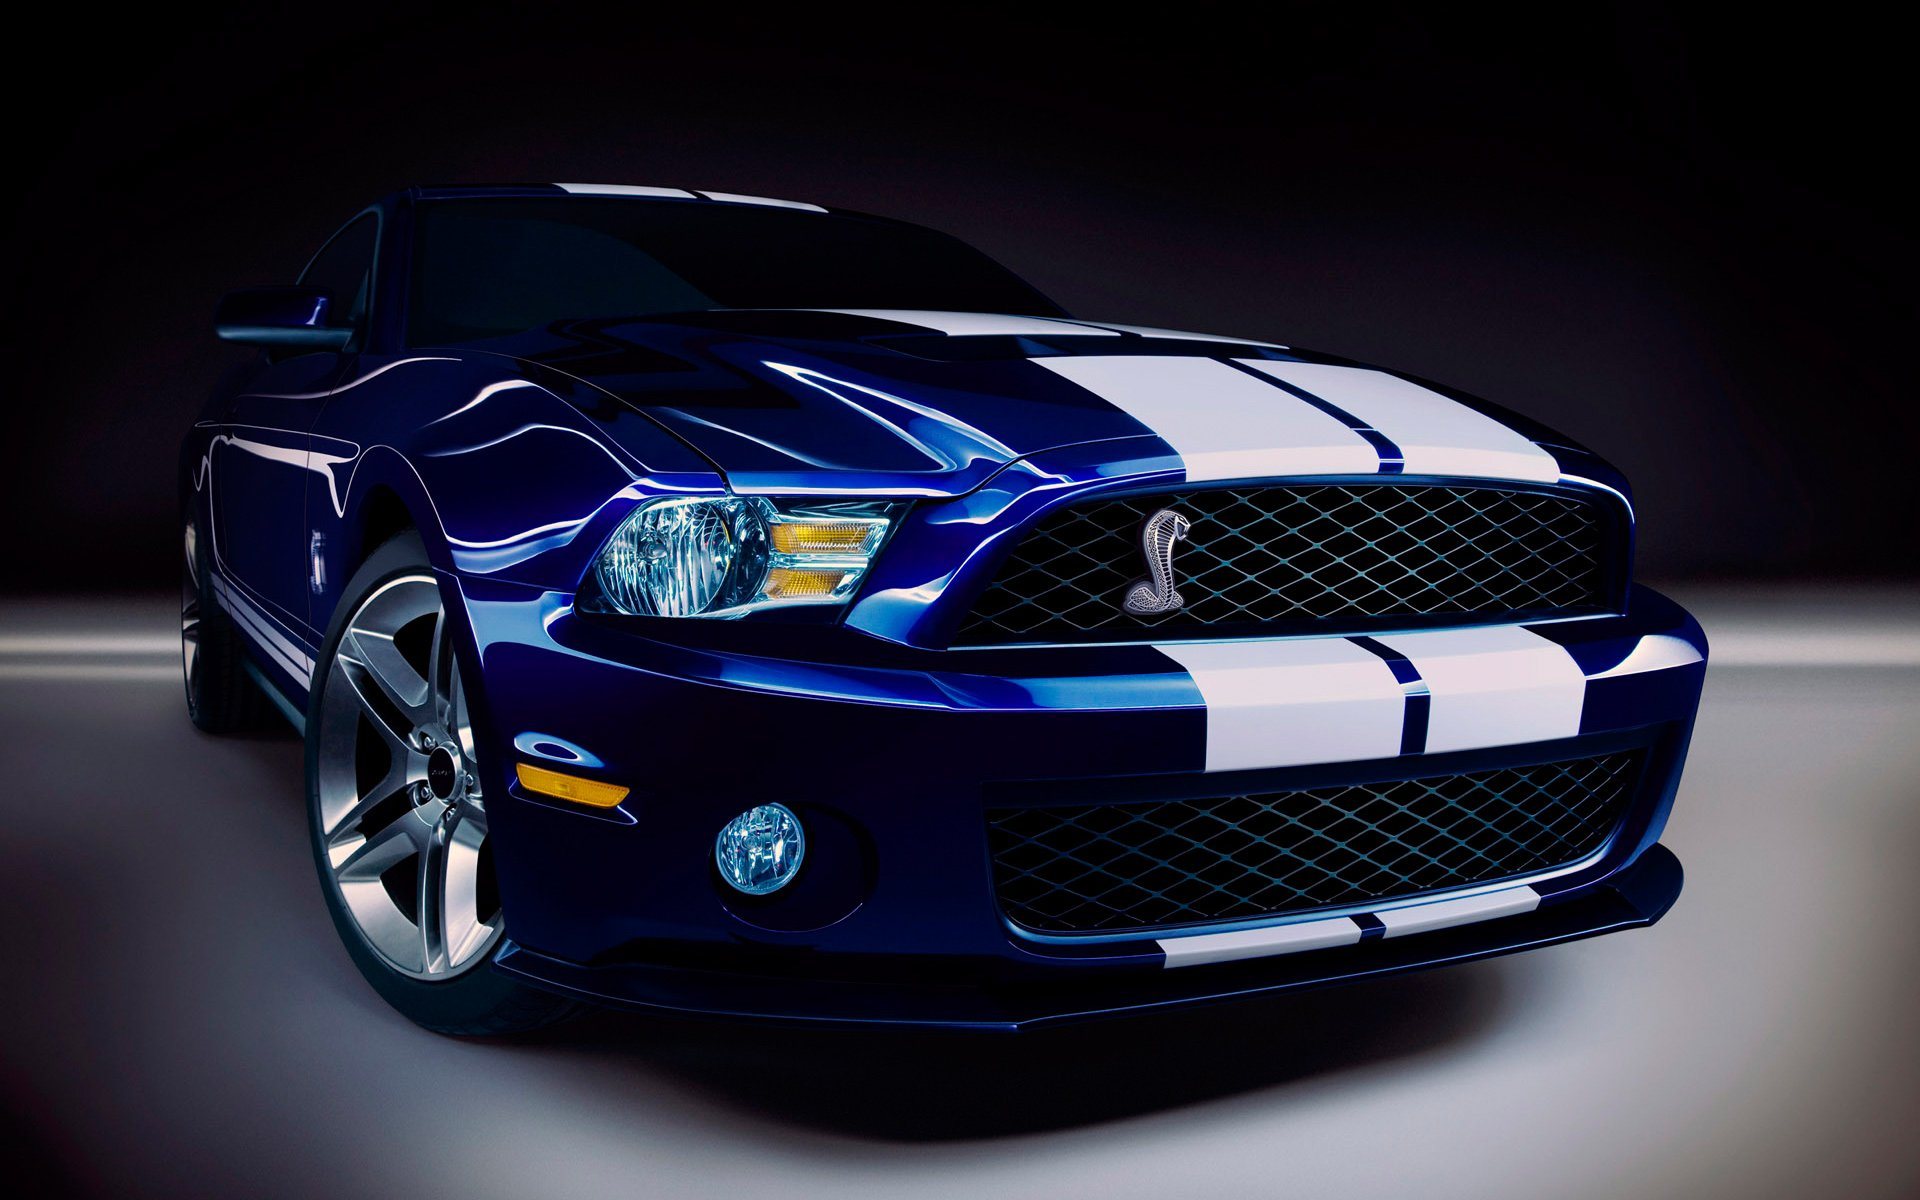 Ford shelby gt500 wallpaper 1920x1200